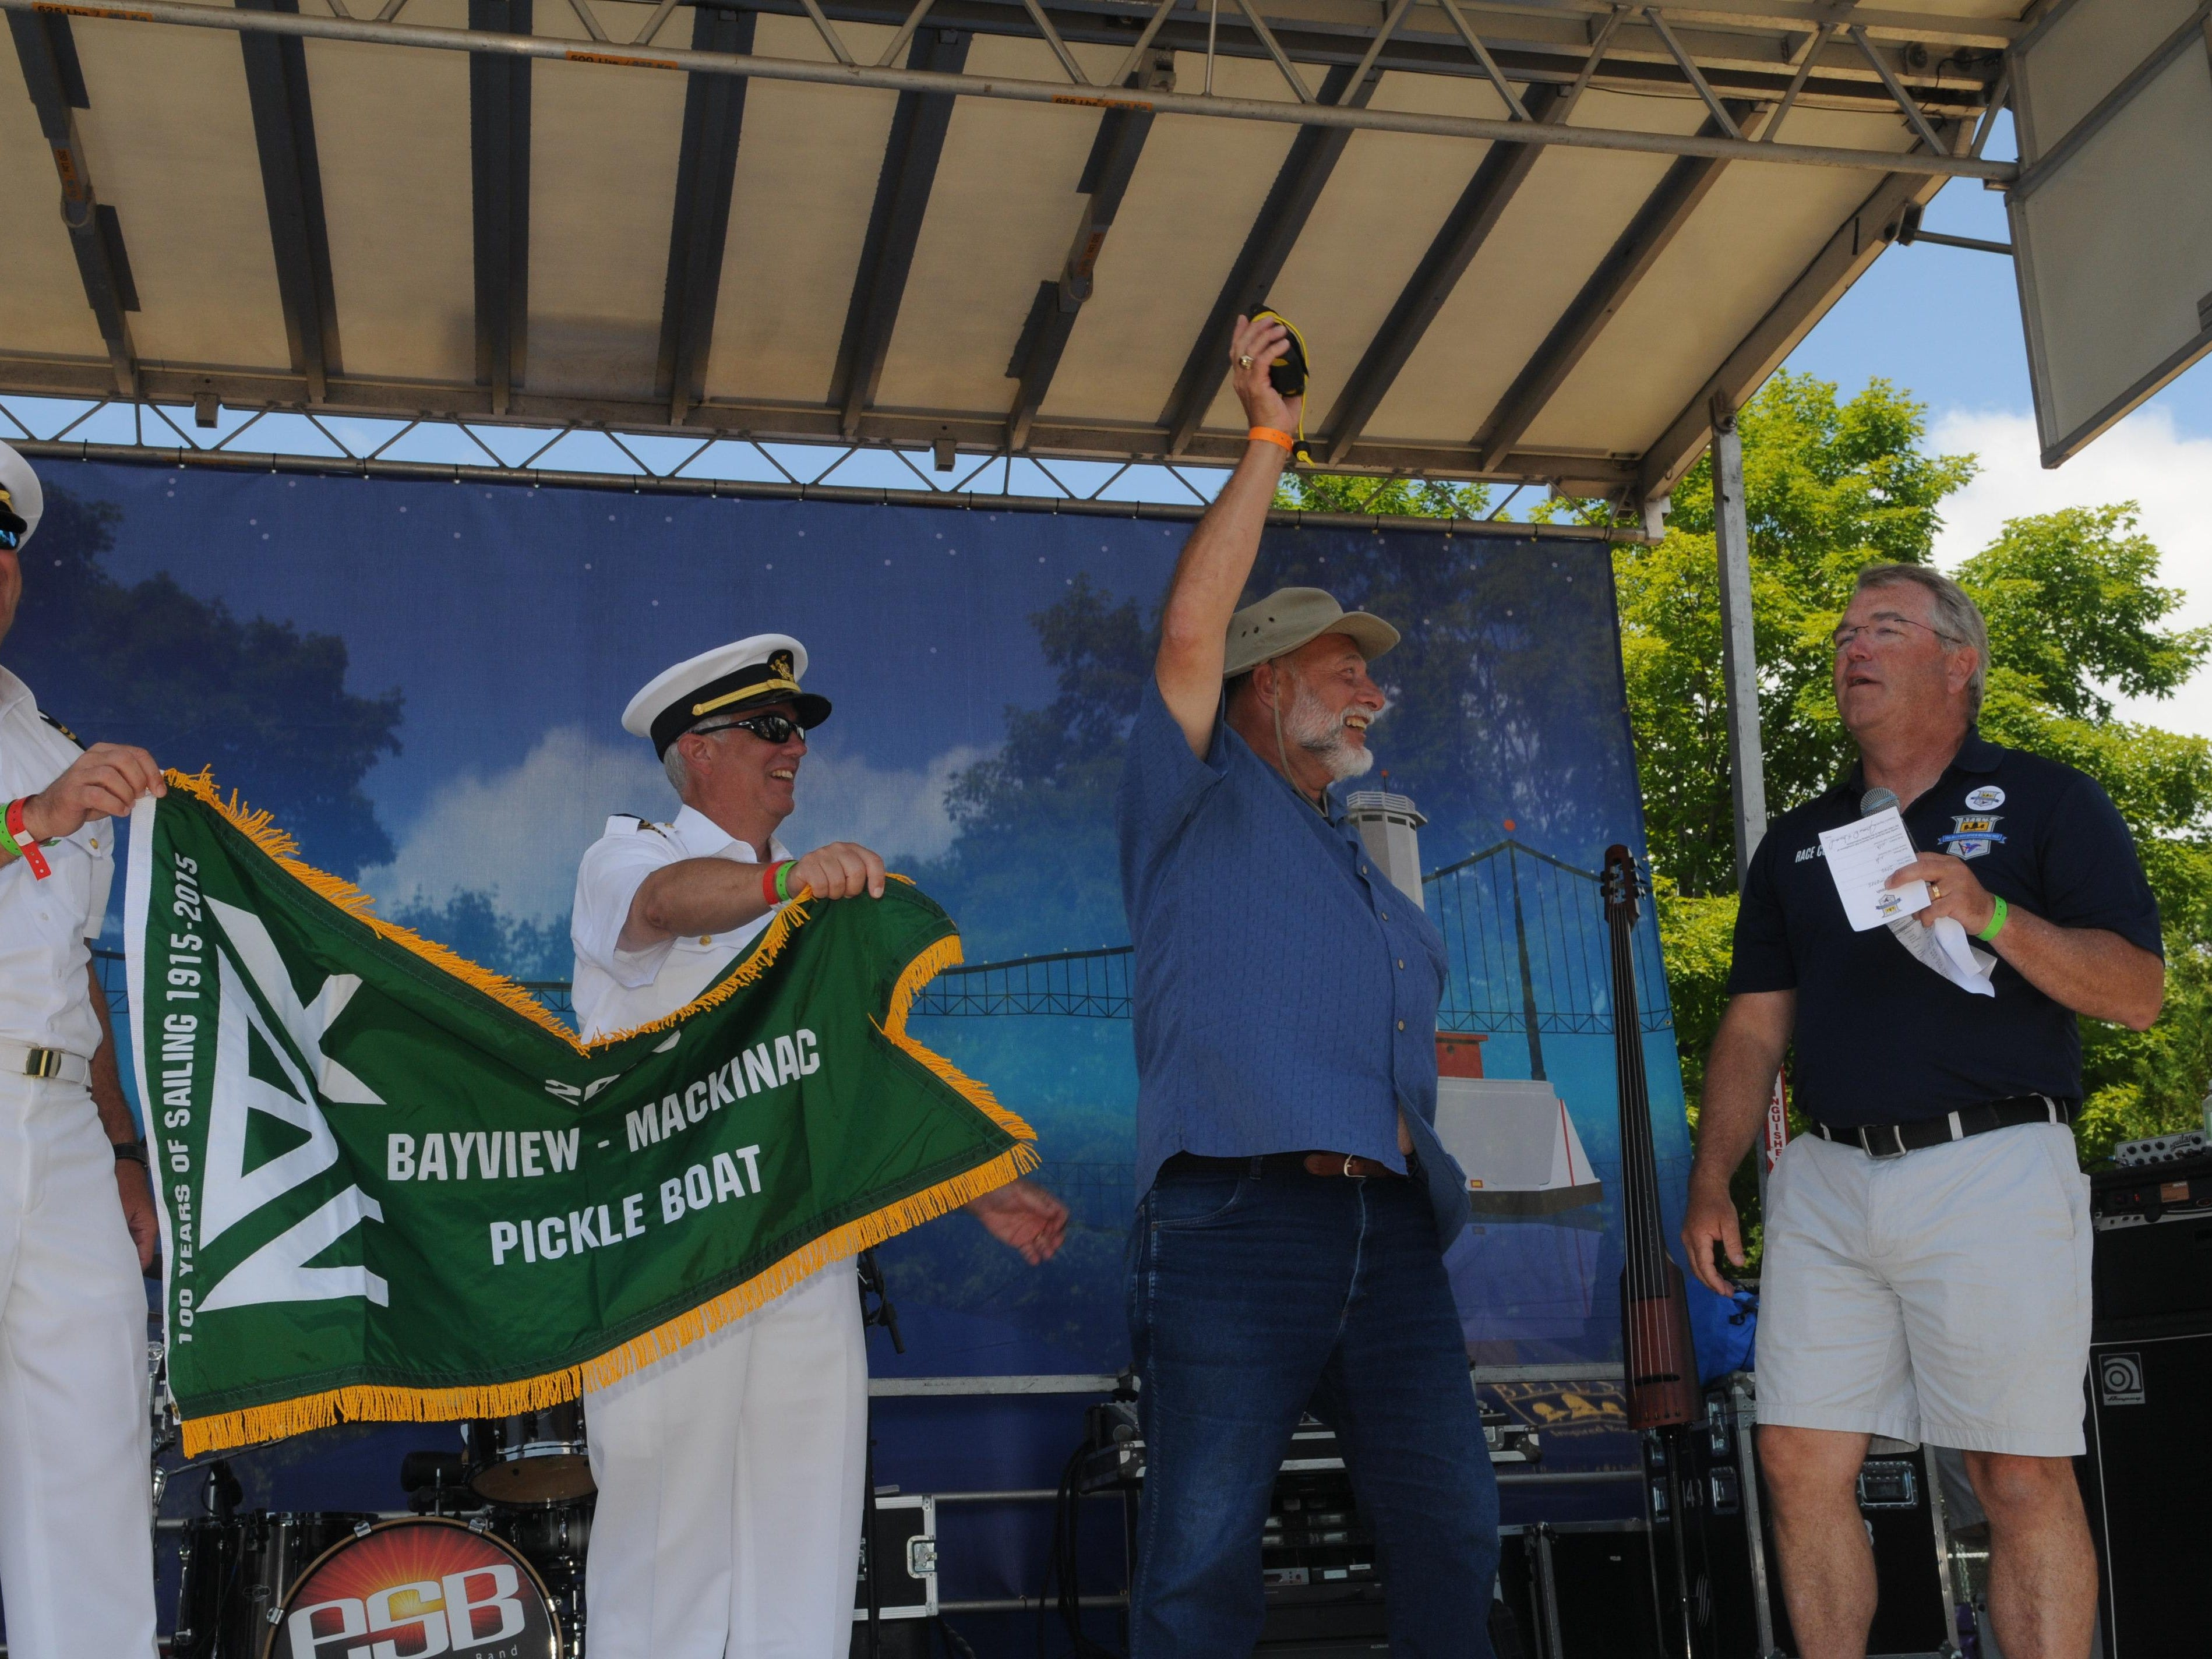 James Howard, of Ark-Imedes, hands over his Yellow Brick tracker to the race officials as he accepts his Pickle Boat pennant for being the last boat to the island Monday, July 20, 2015 during the Port Huron-to-Mackinac Island Sailboat Race. Ark-Imedes is a member of the Bark Shanty Sail Club of Port Sanilac.